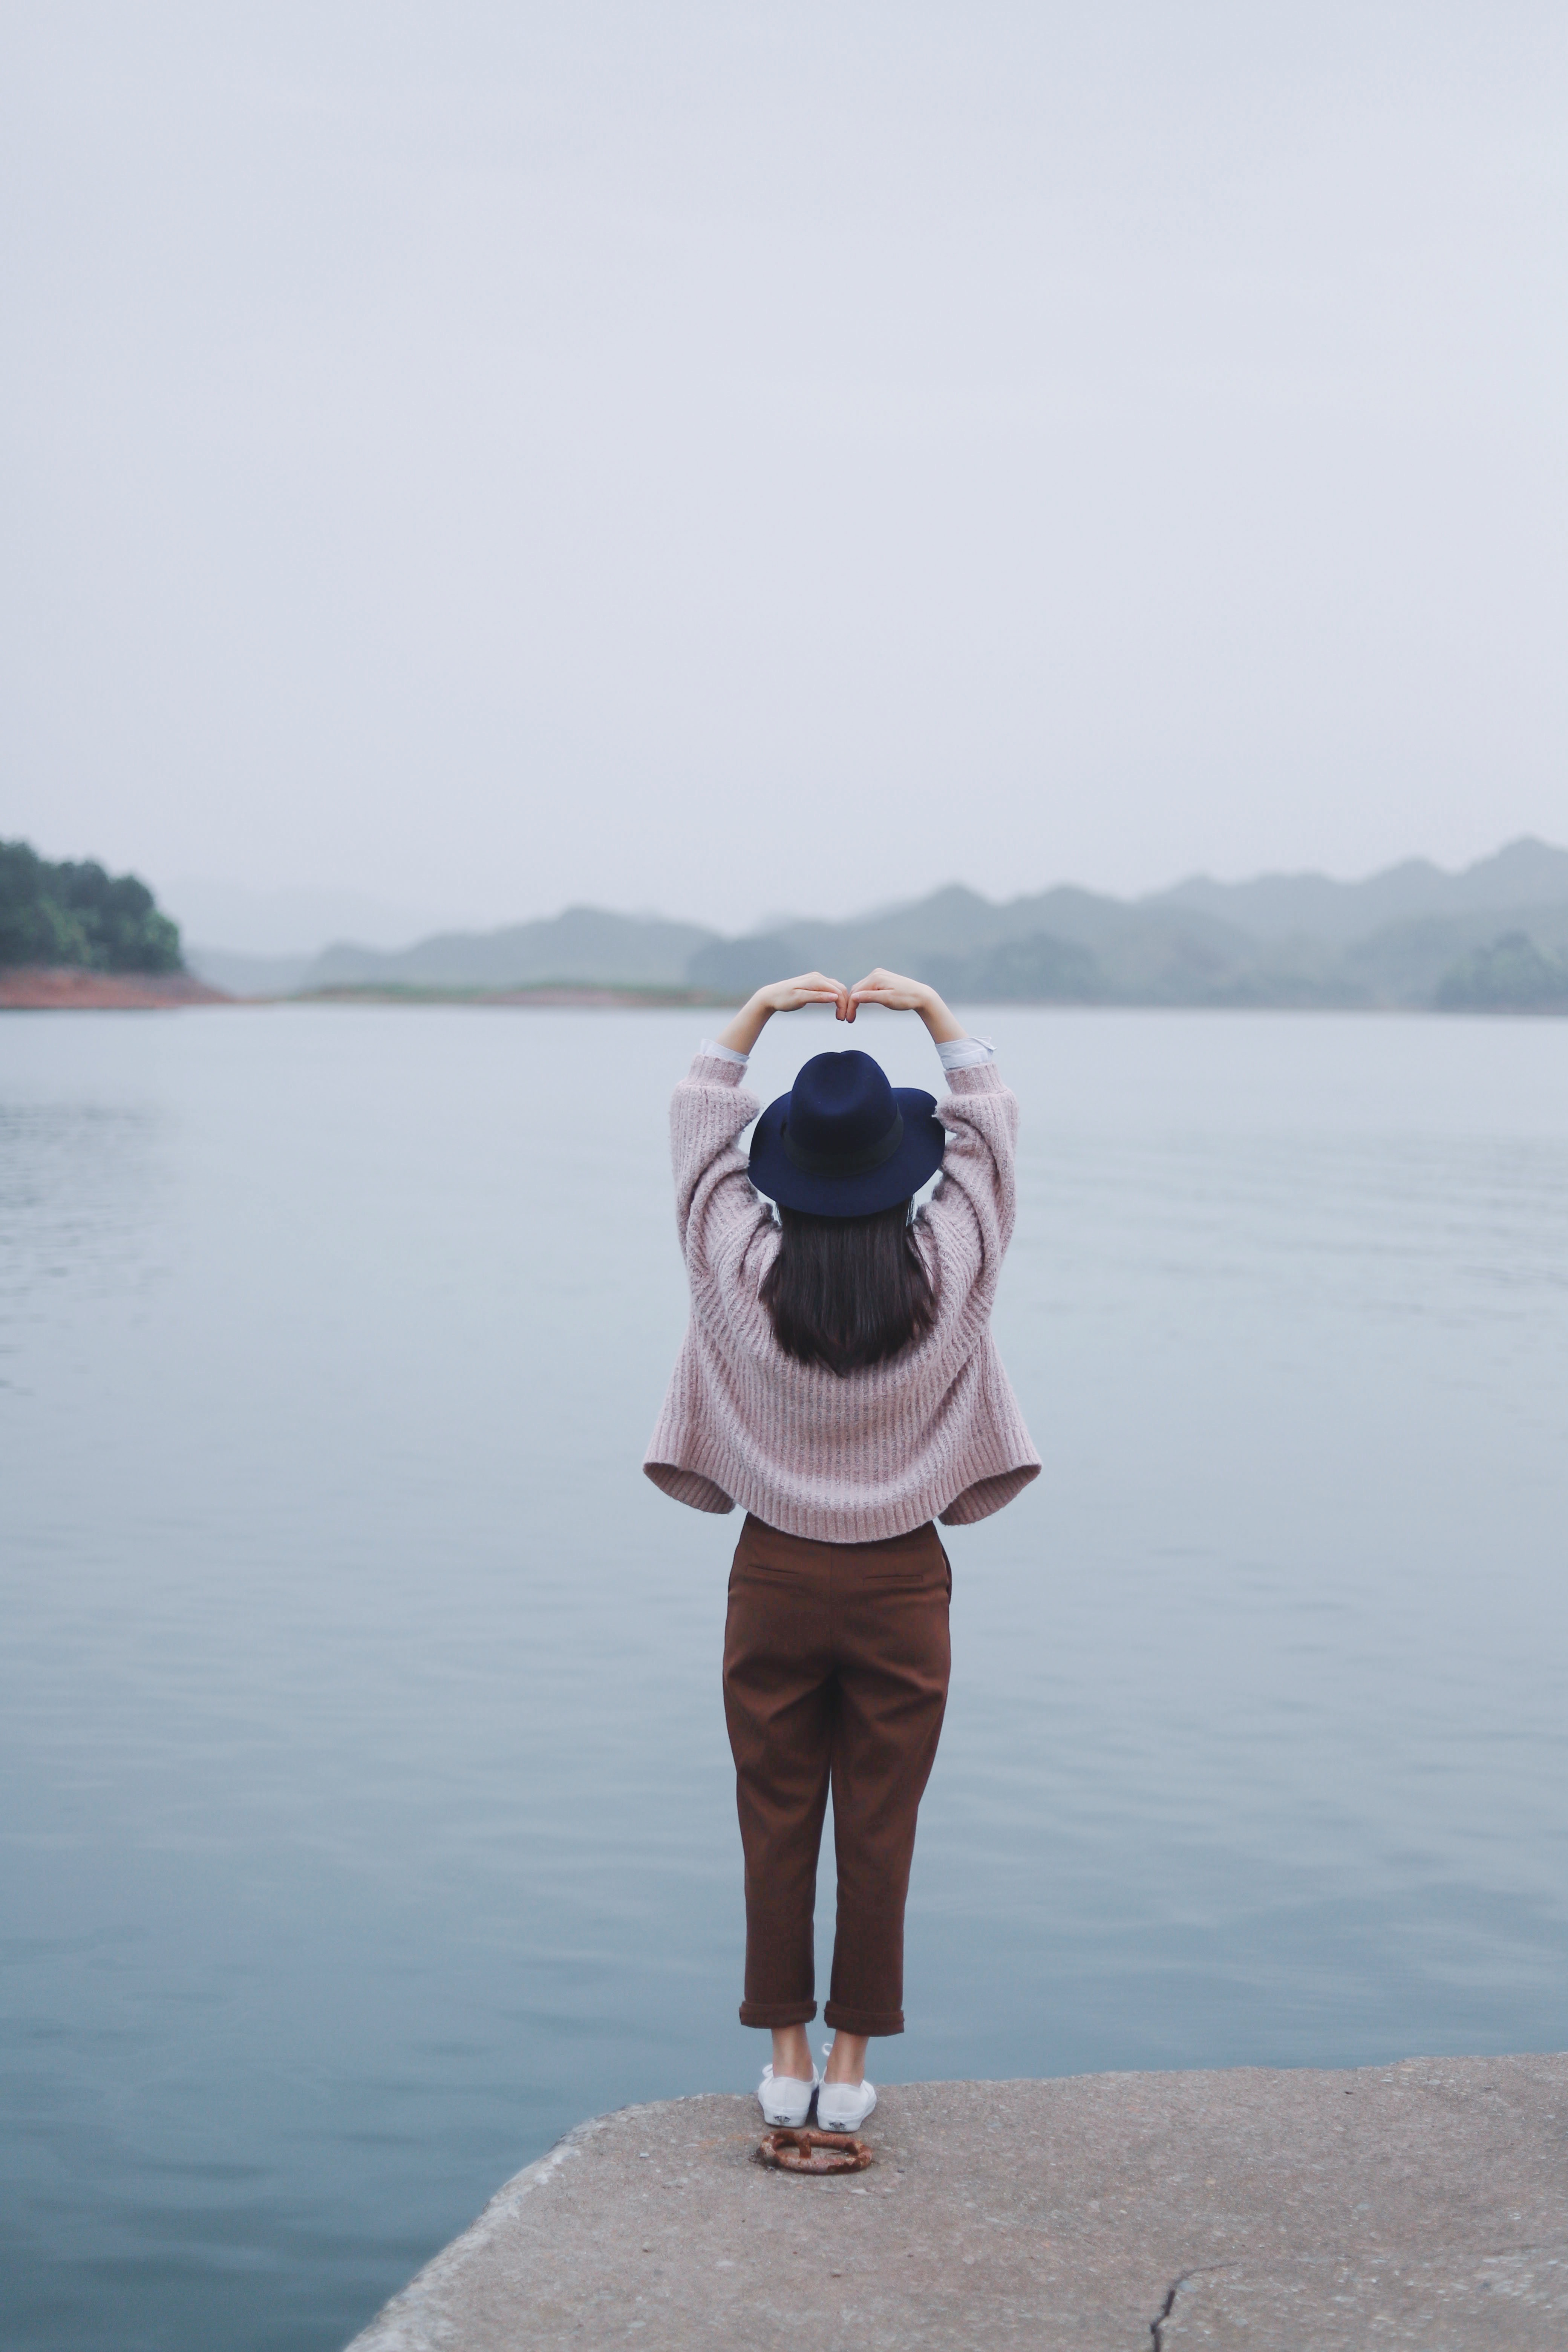 woman taking a heart pose beside body of water